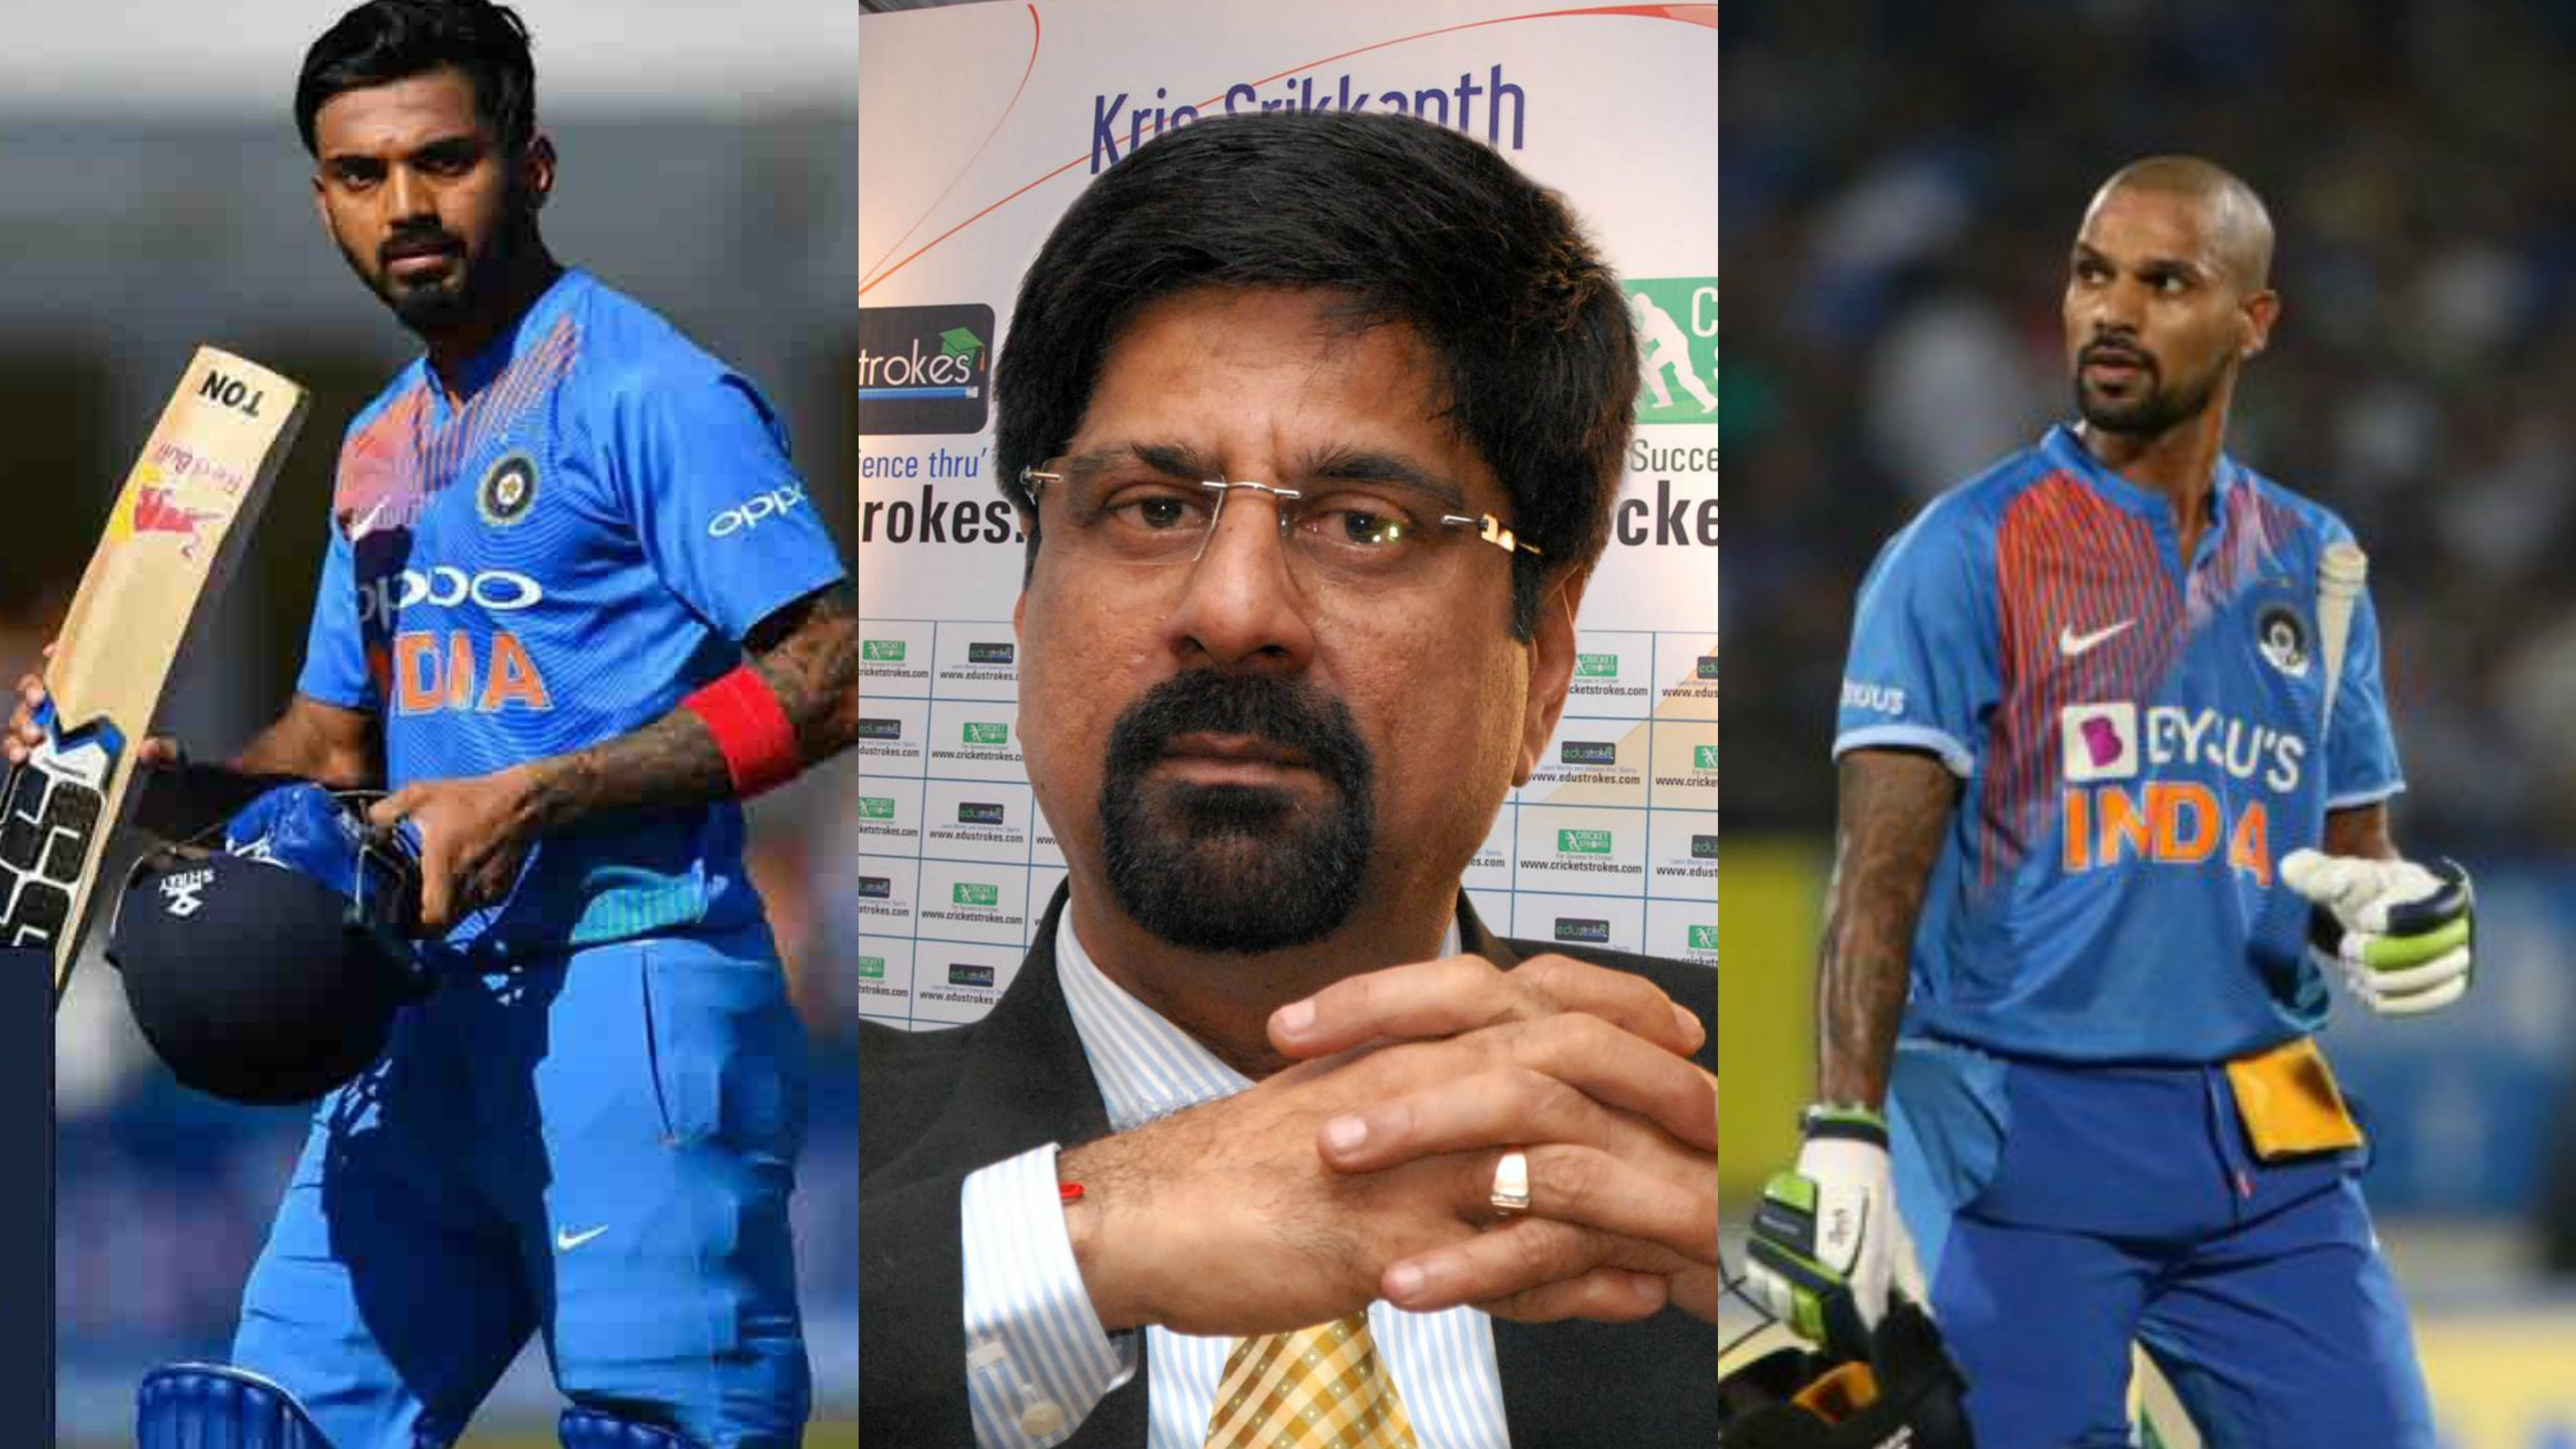 IND v WI 2019: Srikkanth suggests Team India to look beyond Dhawan in T20 and stick firmly with KL Rahul